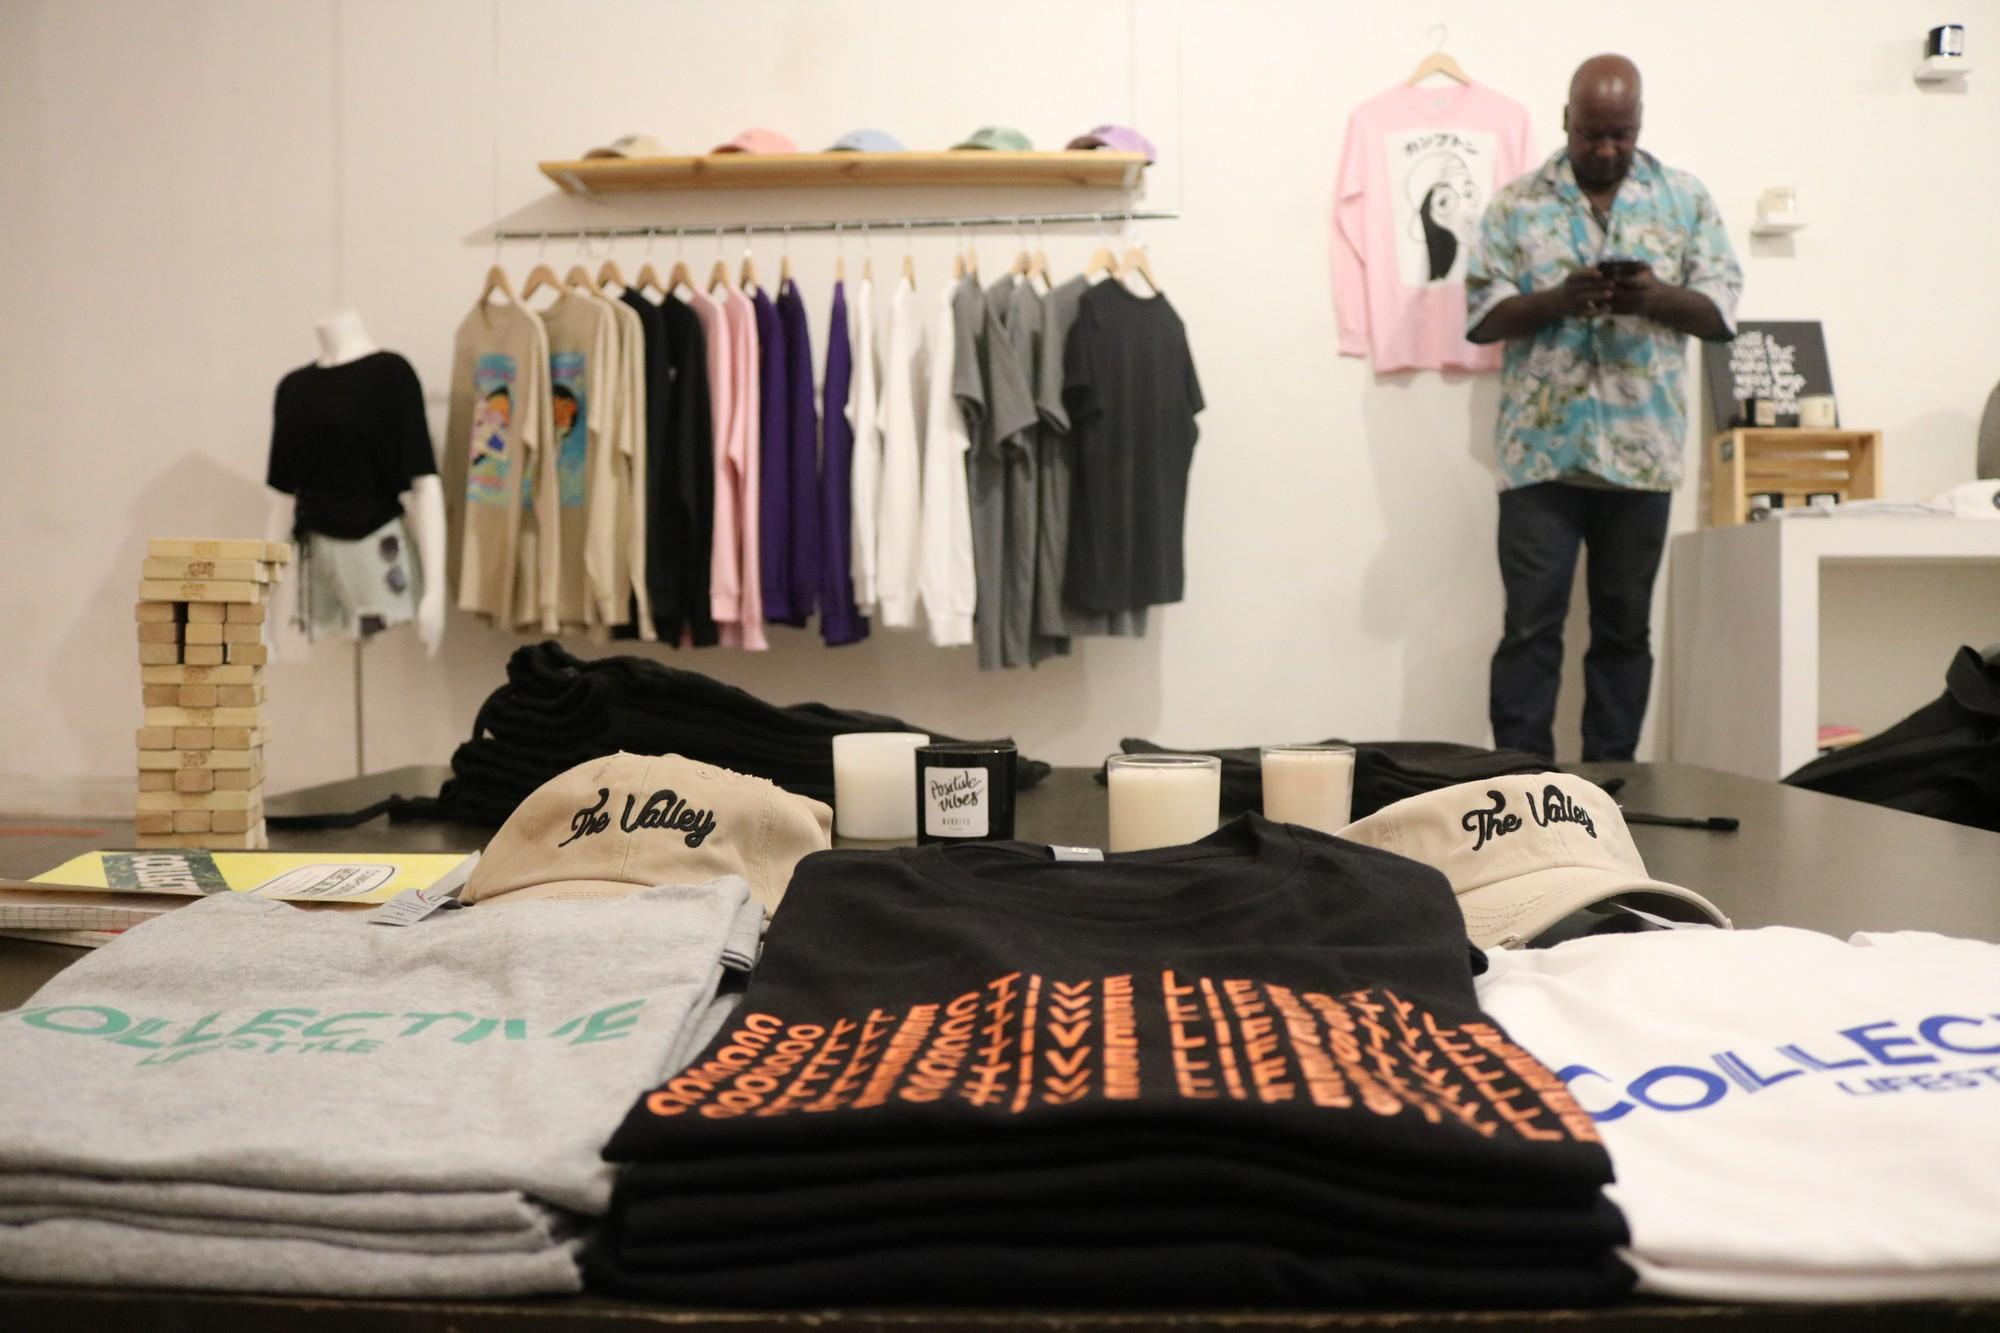 8519c7012eb23 Collective Lifestyle focuses on selling fashionable clothes for the youth  culture in the San Fernando Valley Photo credit  Kianna Hendricks